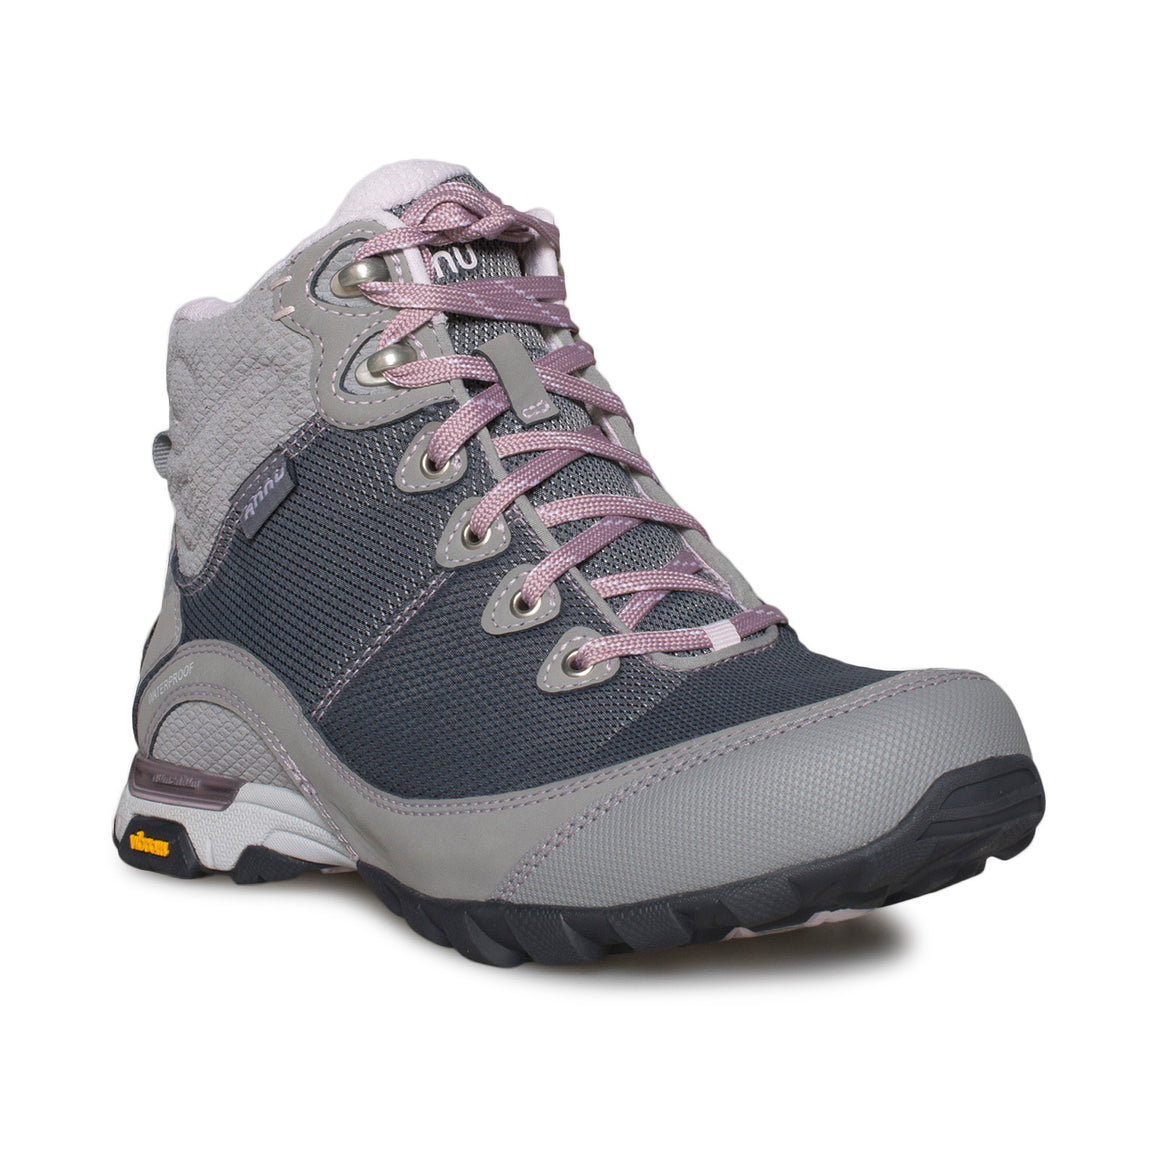 Ahnu Sugarpine II WP Ripstop Wild Dove Shoes - Women's